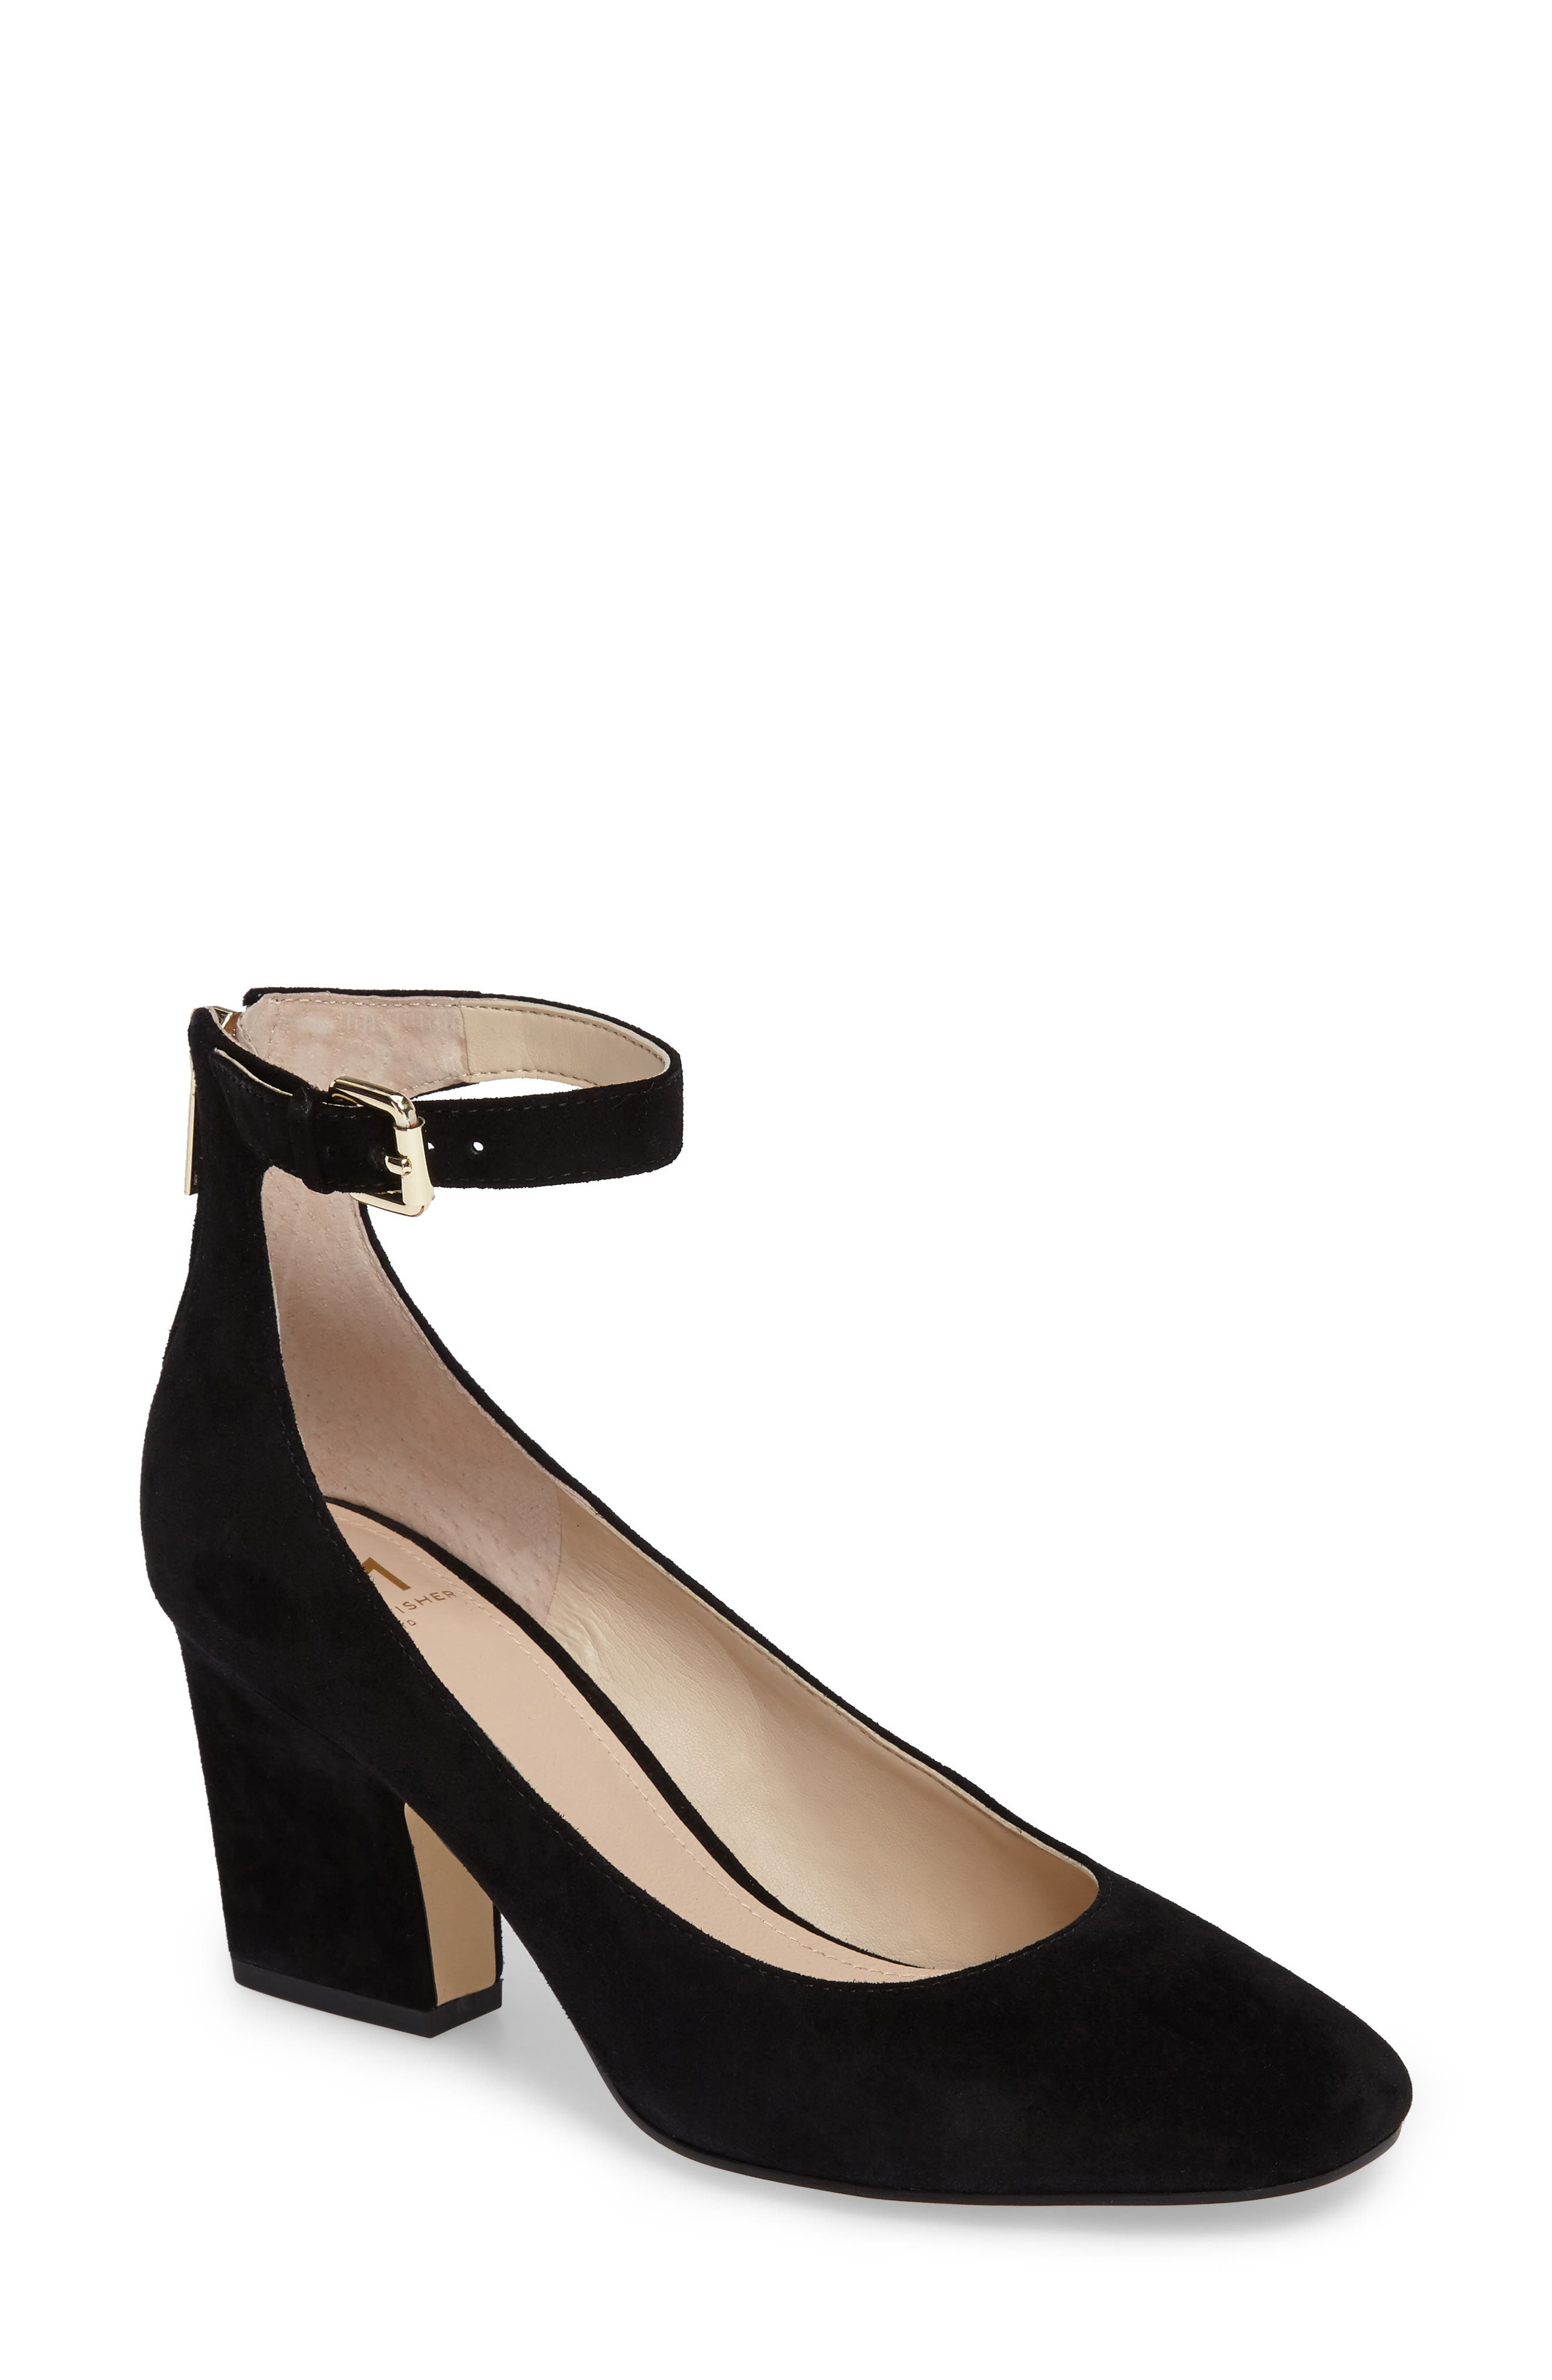 Anisy Ankle Strap Pump,                         Main,                         color,